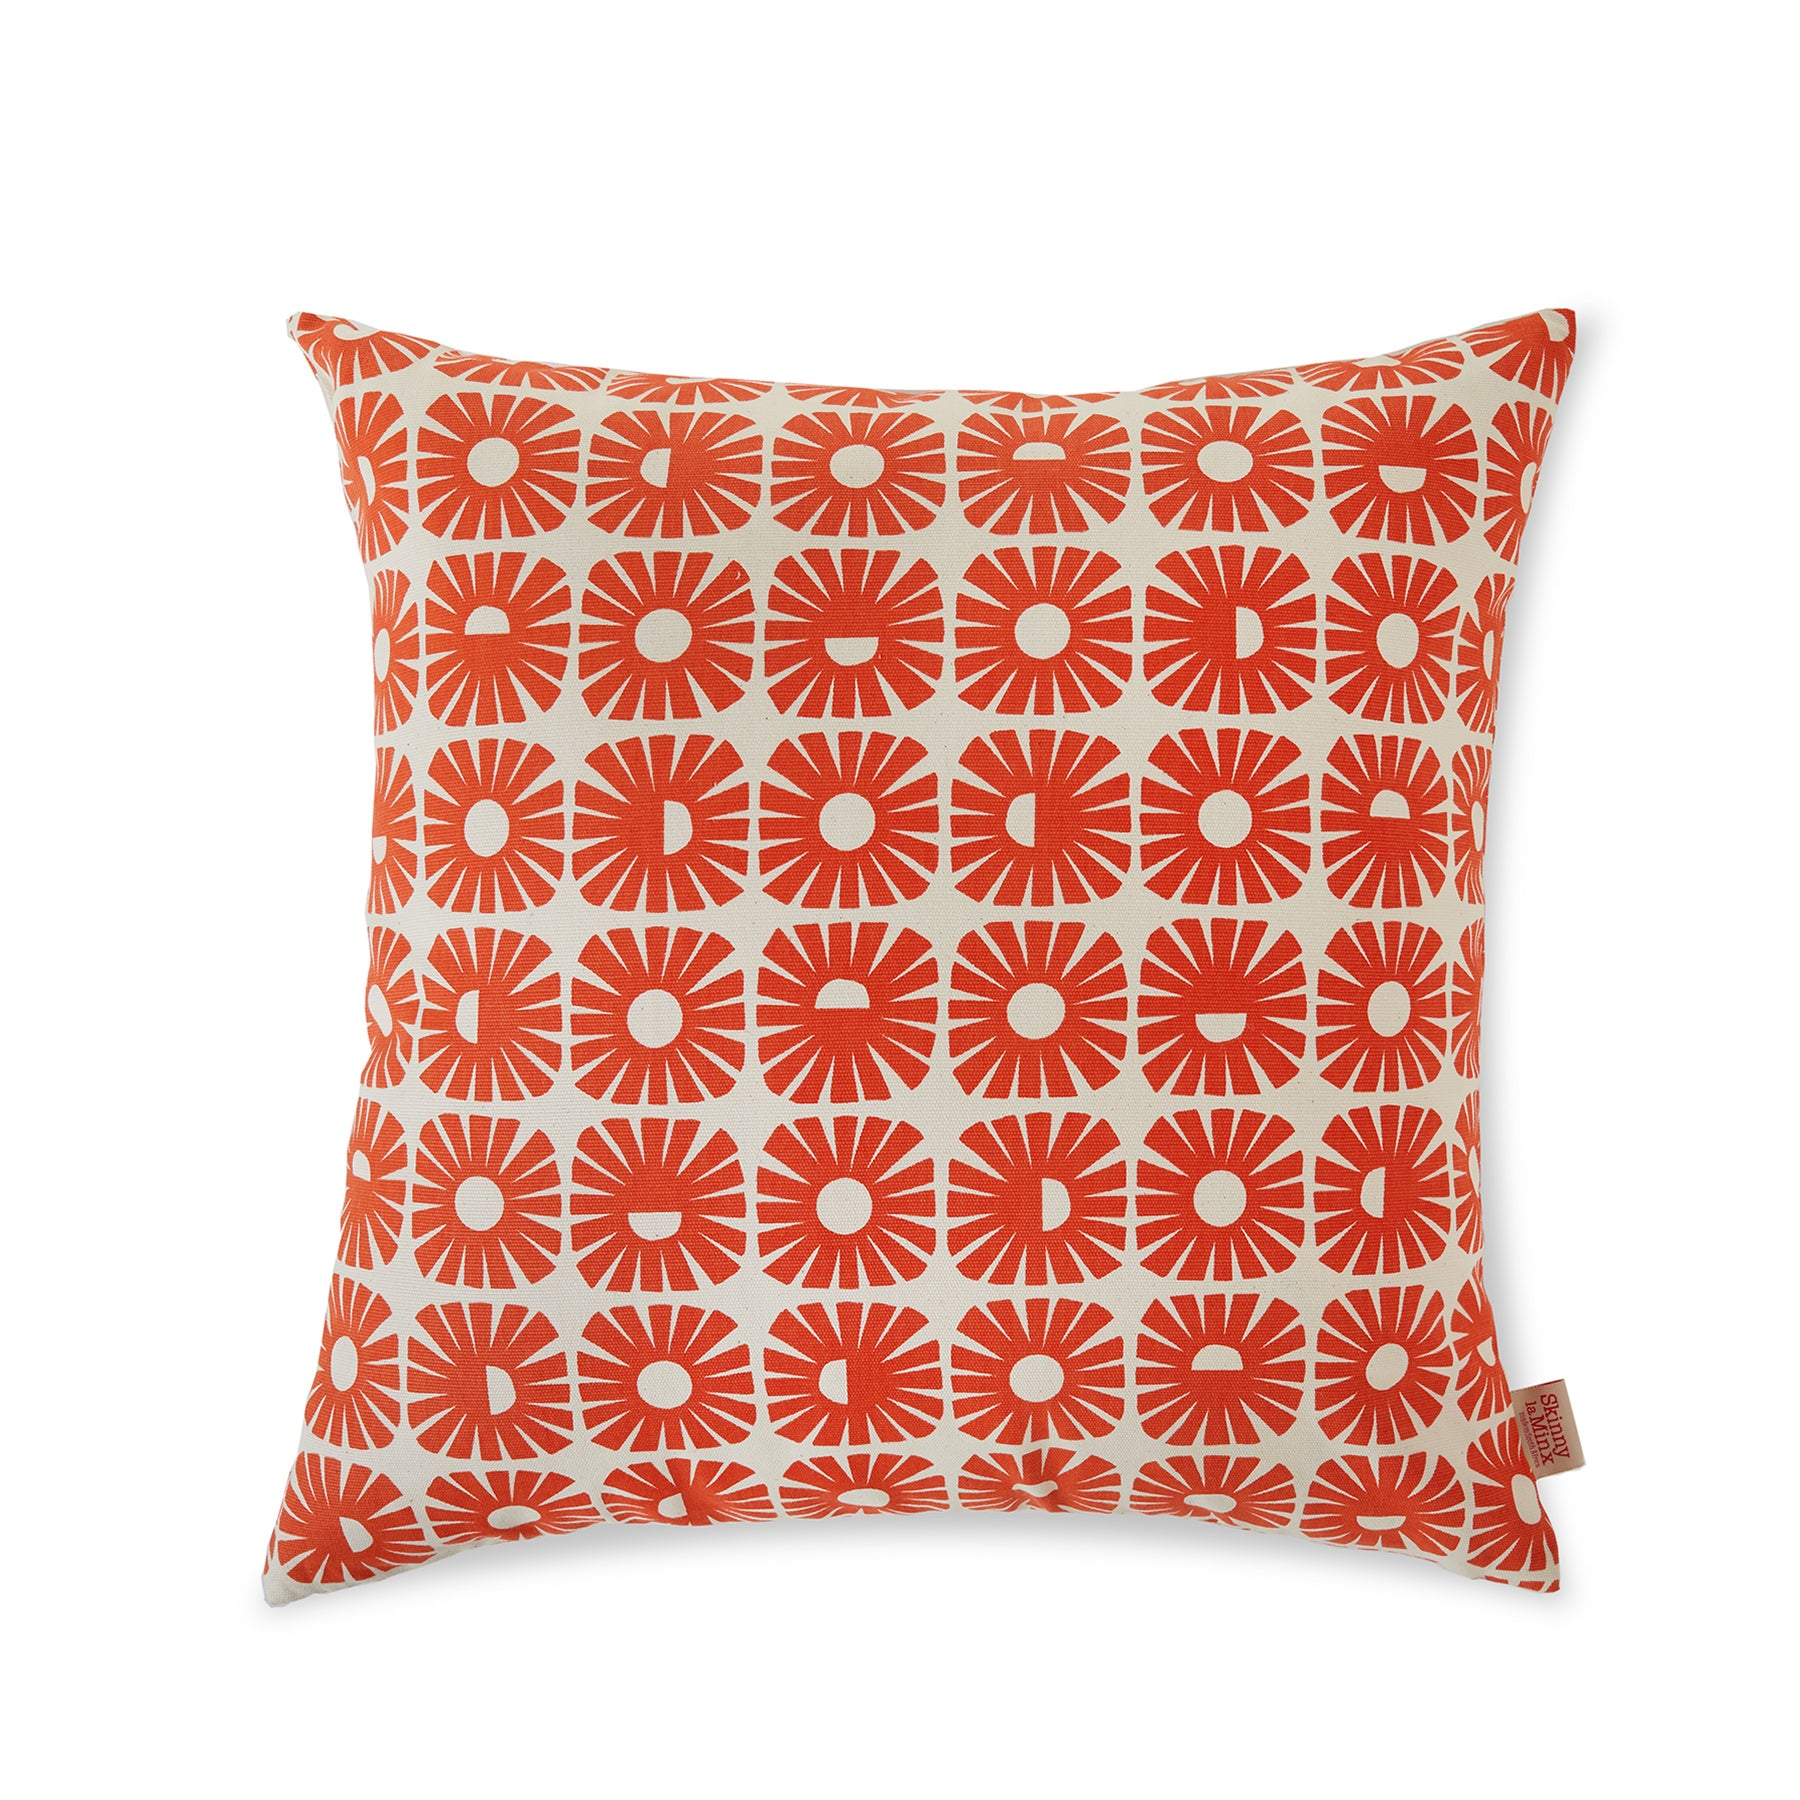 Sunnyside Pillow in Persimmon Zoom Image 1